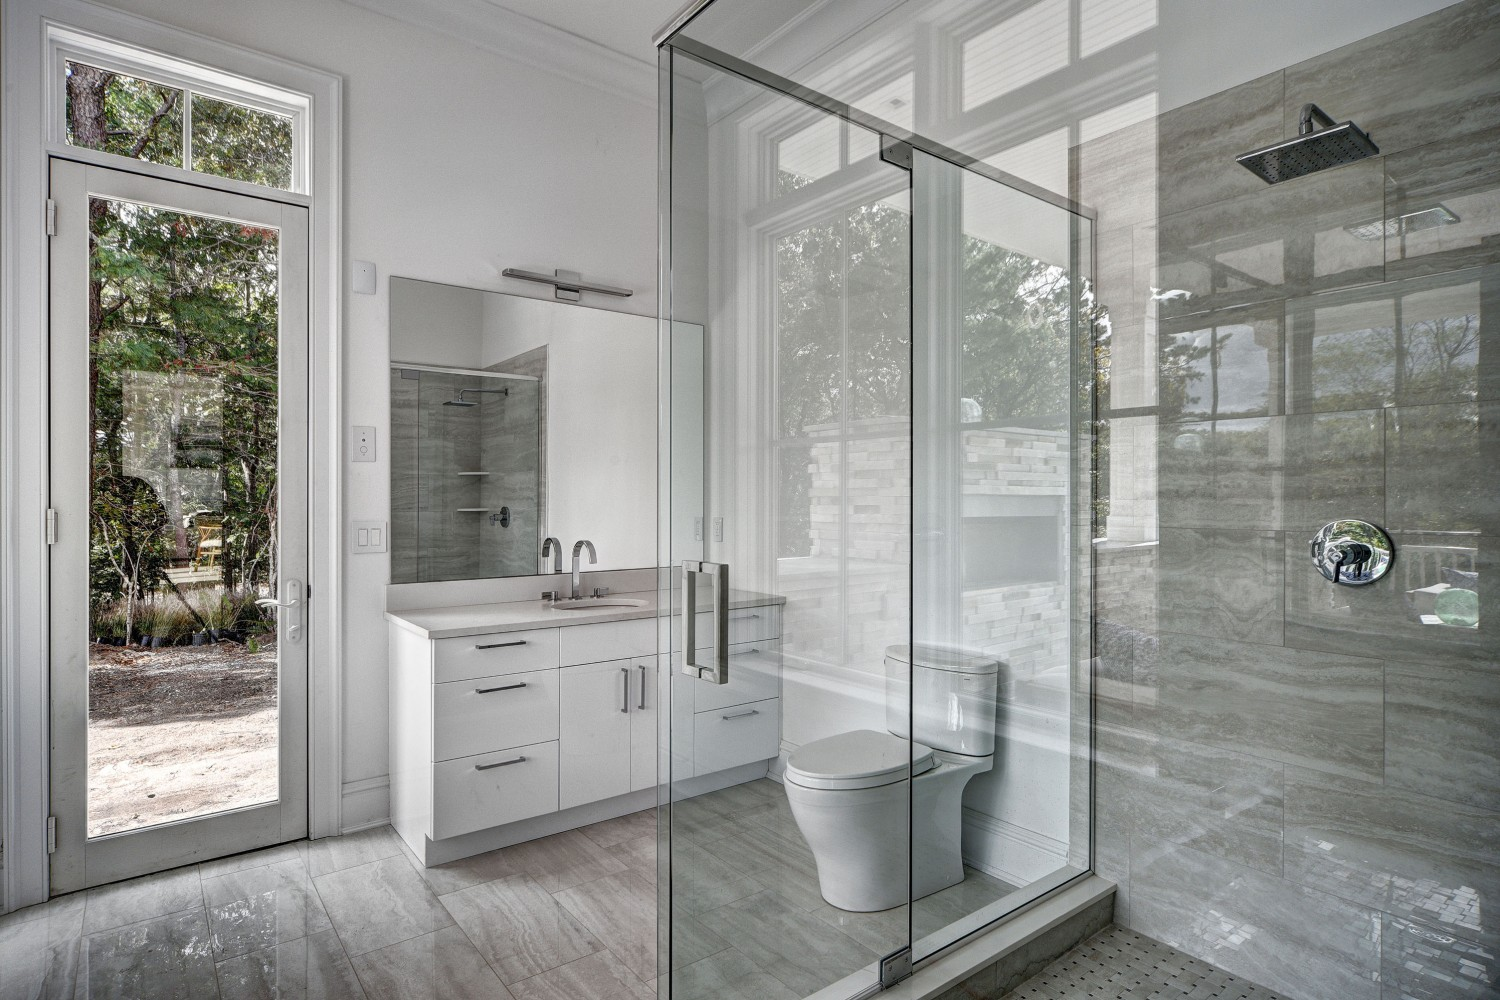 <span>pool bathroom</span><span  class='incontracts'>IN CONTRACT </span>